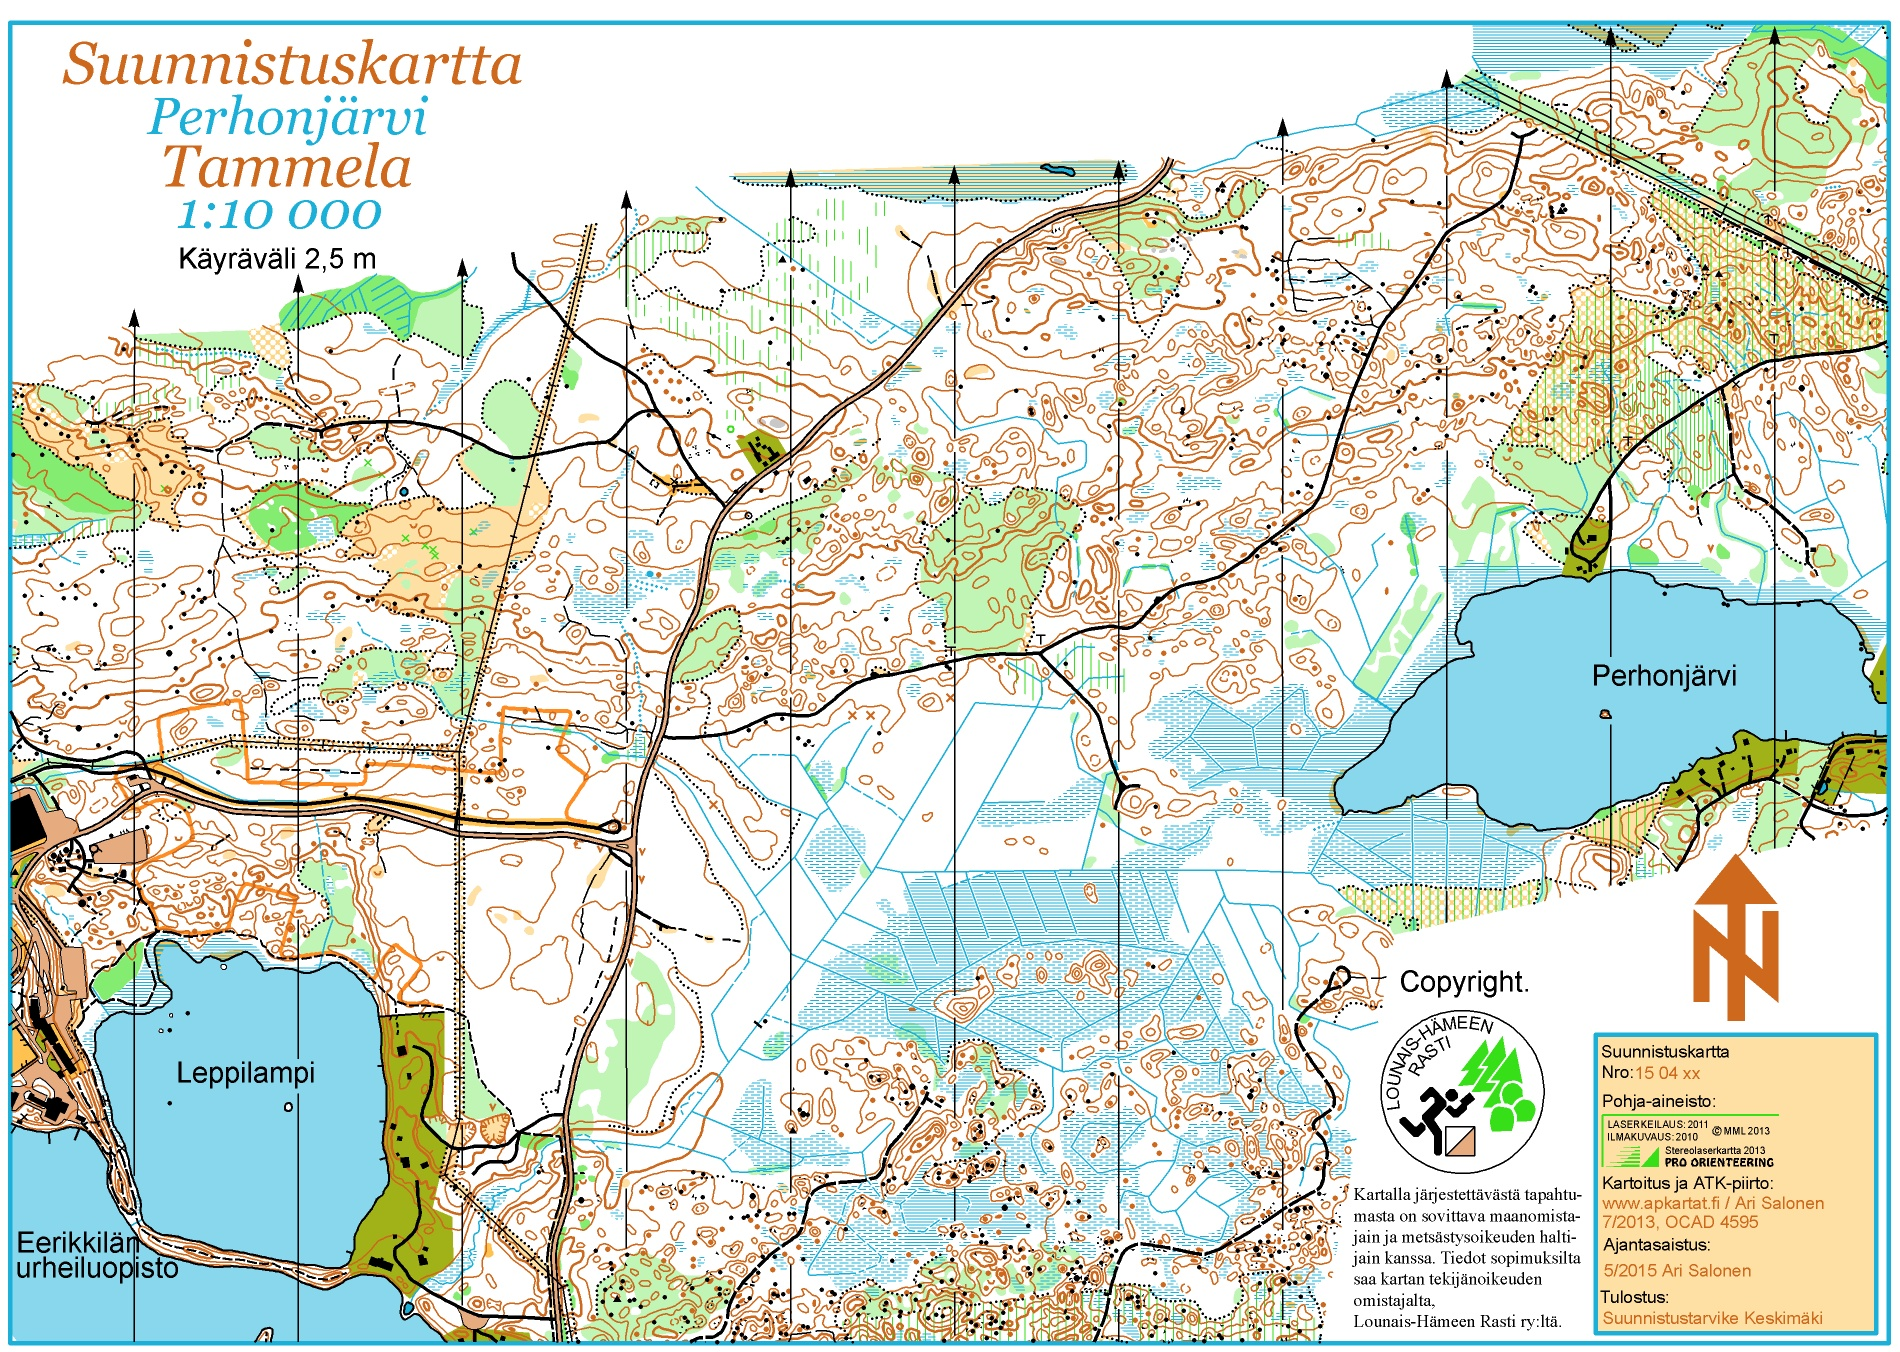 Forssa Games 2015 June 11th 2015 Orienteering Map from olfellowsfi